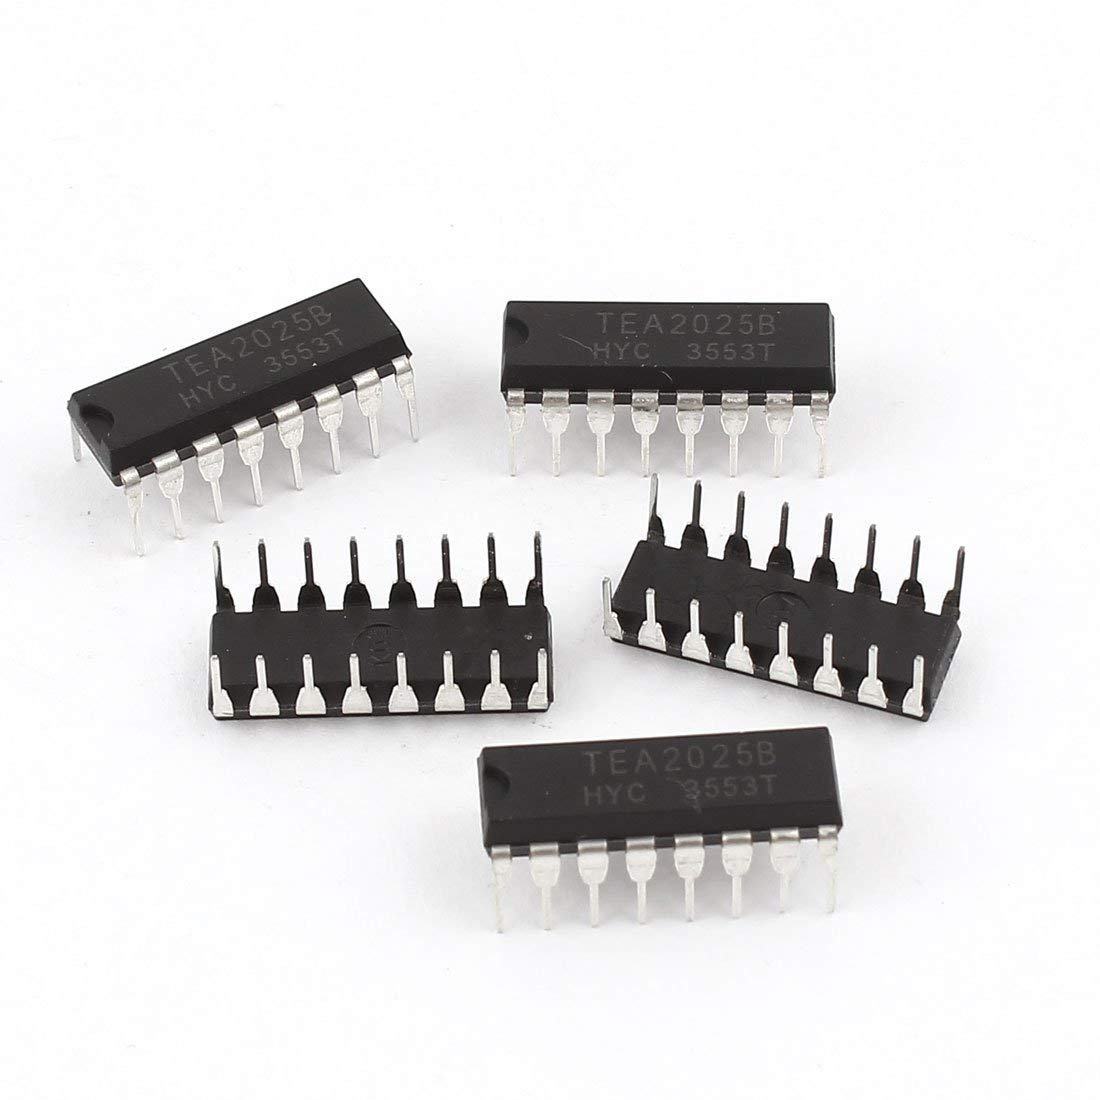 Cheap Ic Audio Amplifier Circuit Find Tda2009 Stereo Hifi Class Ab Power Electronic Get Quotations Aexit 5 Pcs Dip Switches Tea2025 Tea2025b 16 Sp3t